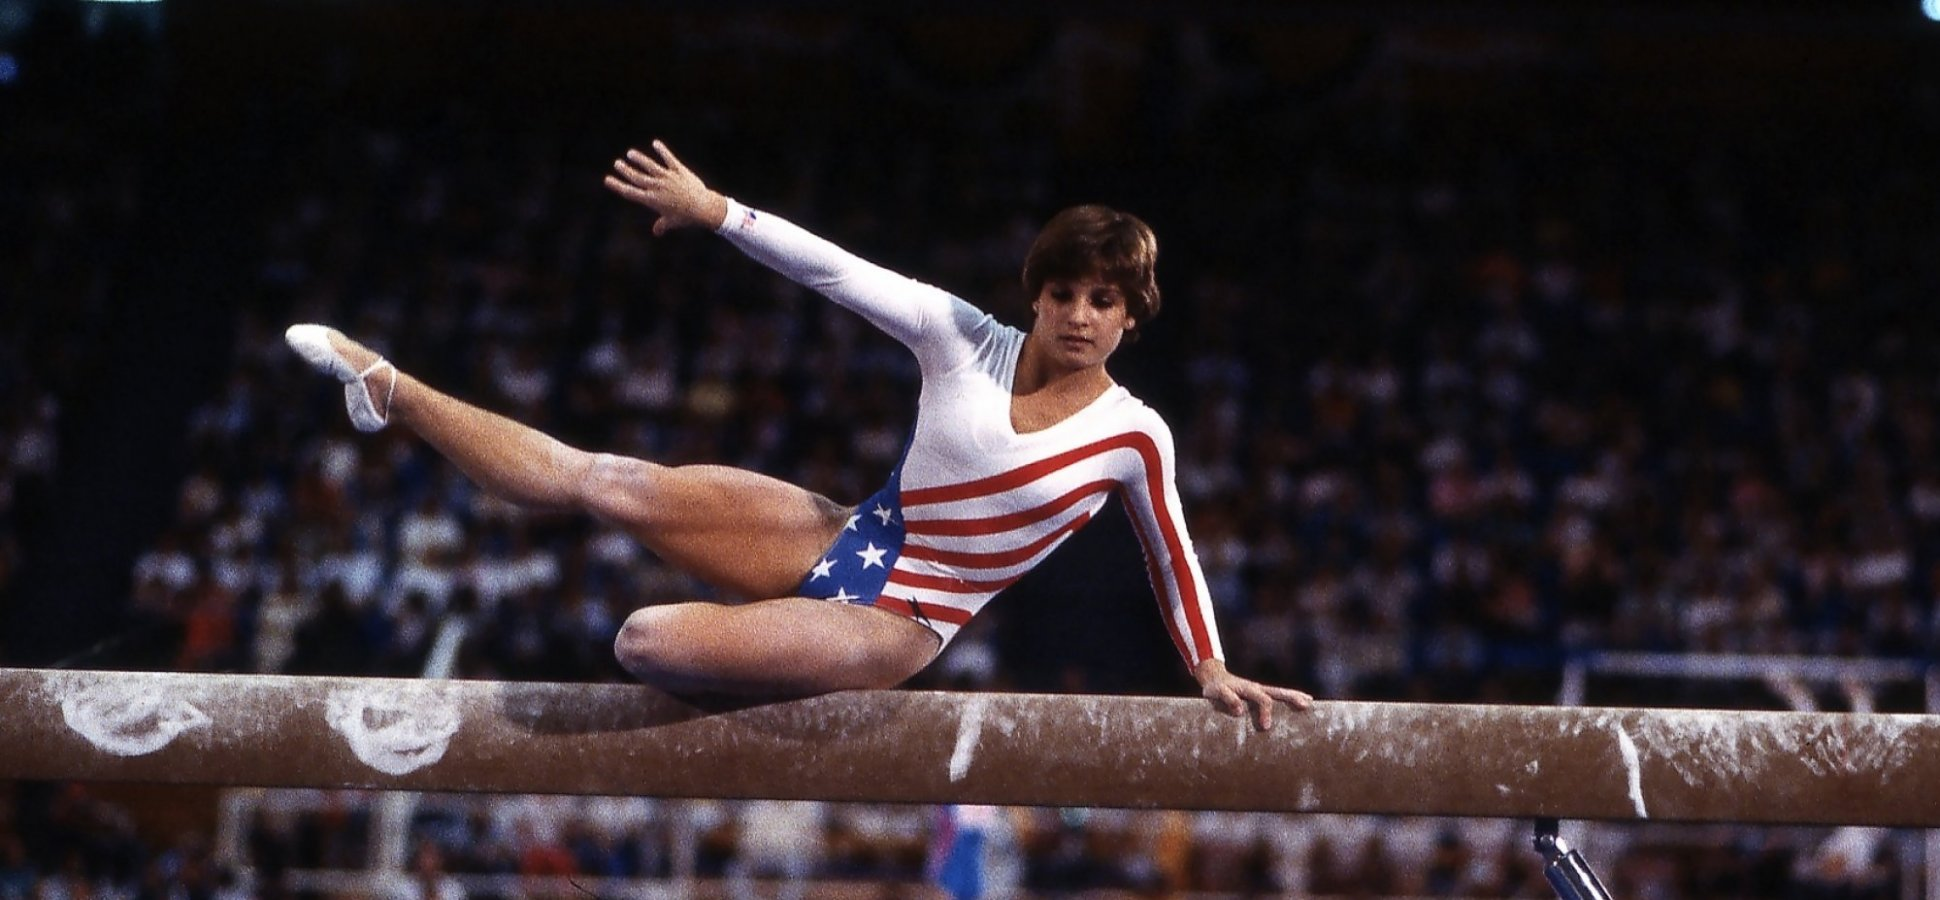 21 Inspiring Quotes from Olympians That Will Bring Out Your Inner Champion